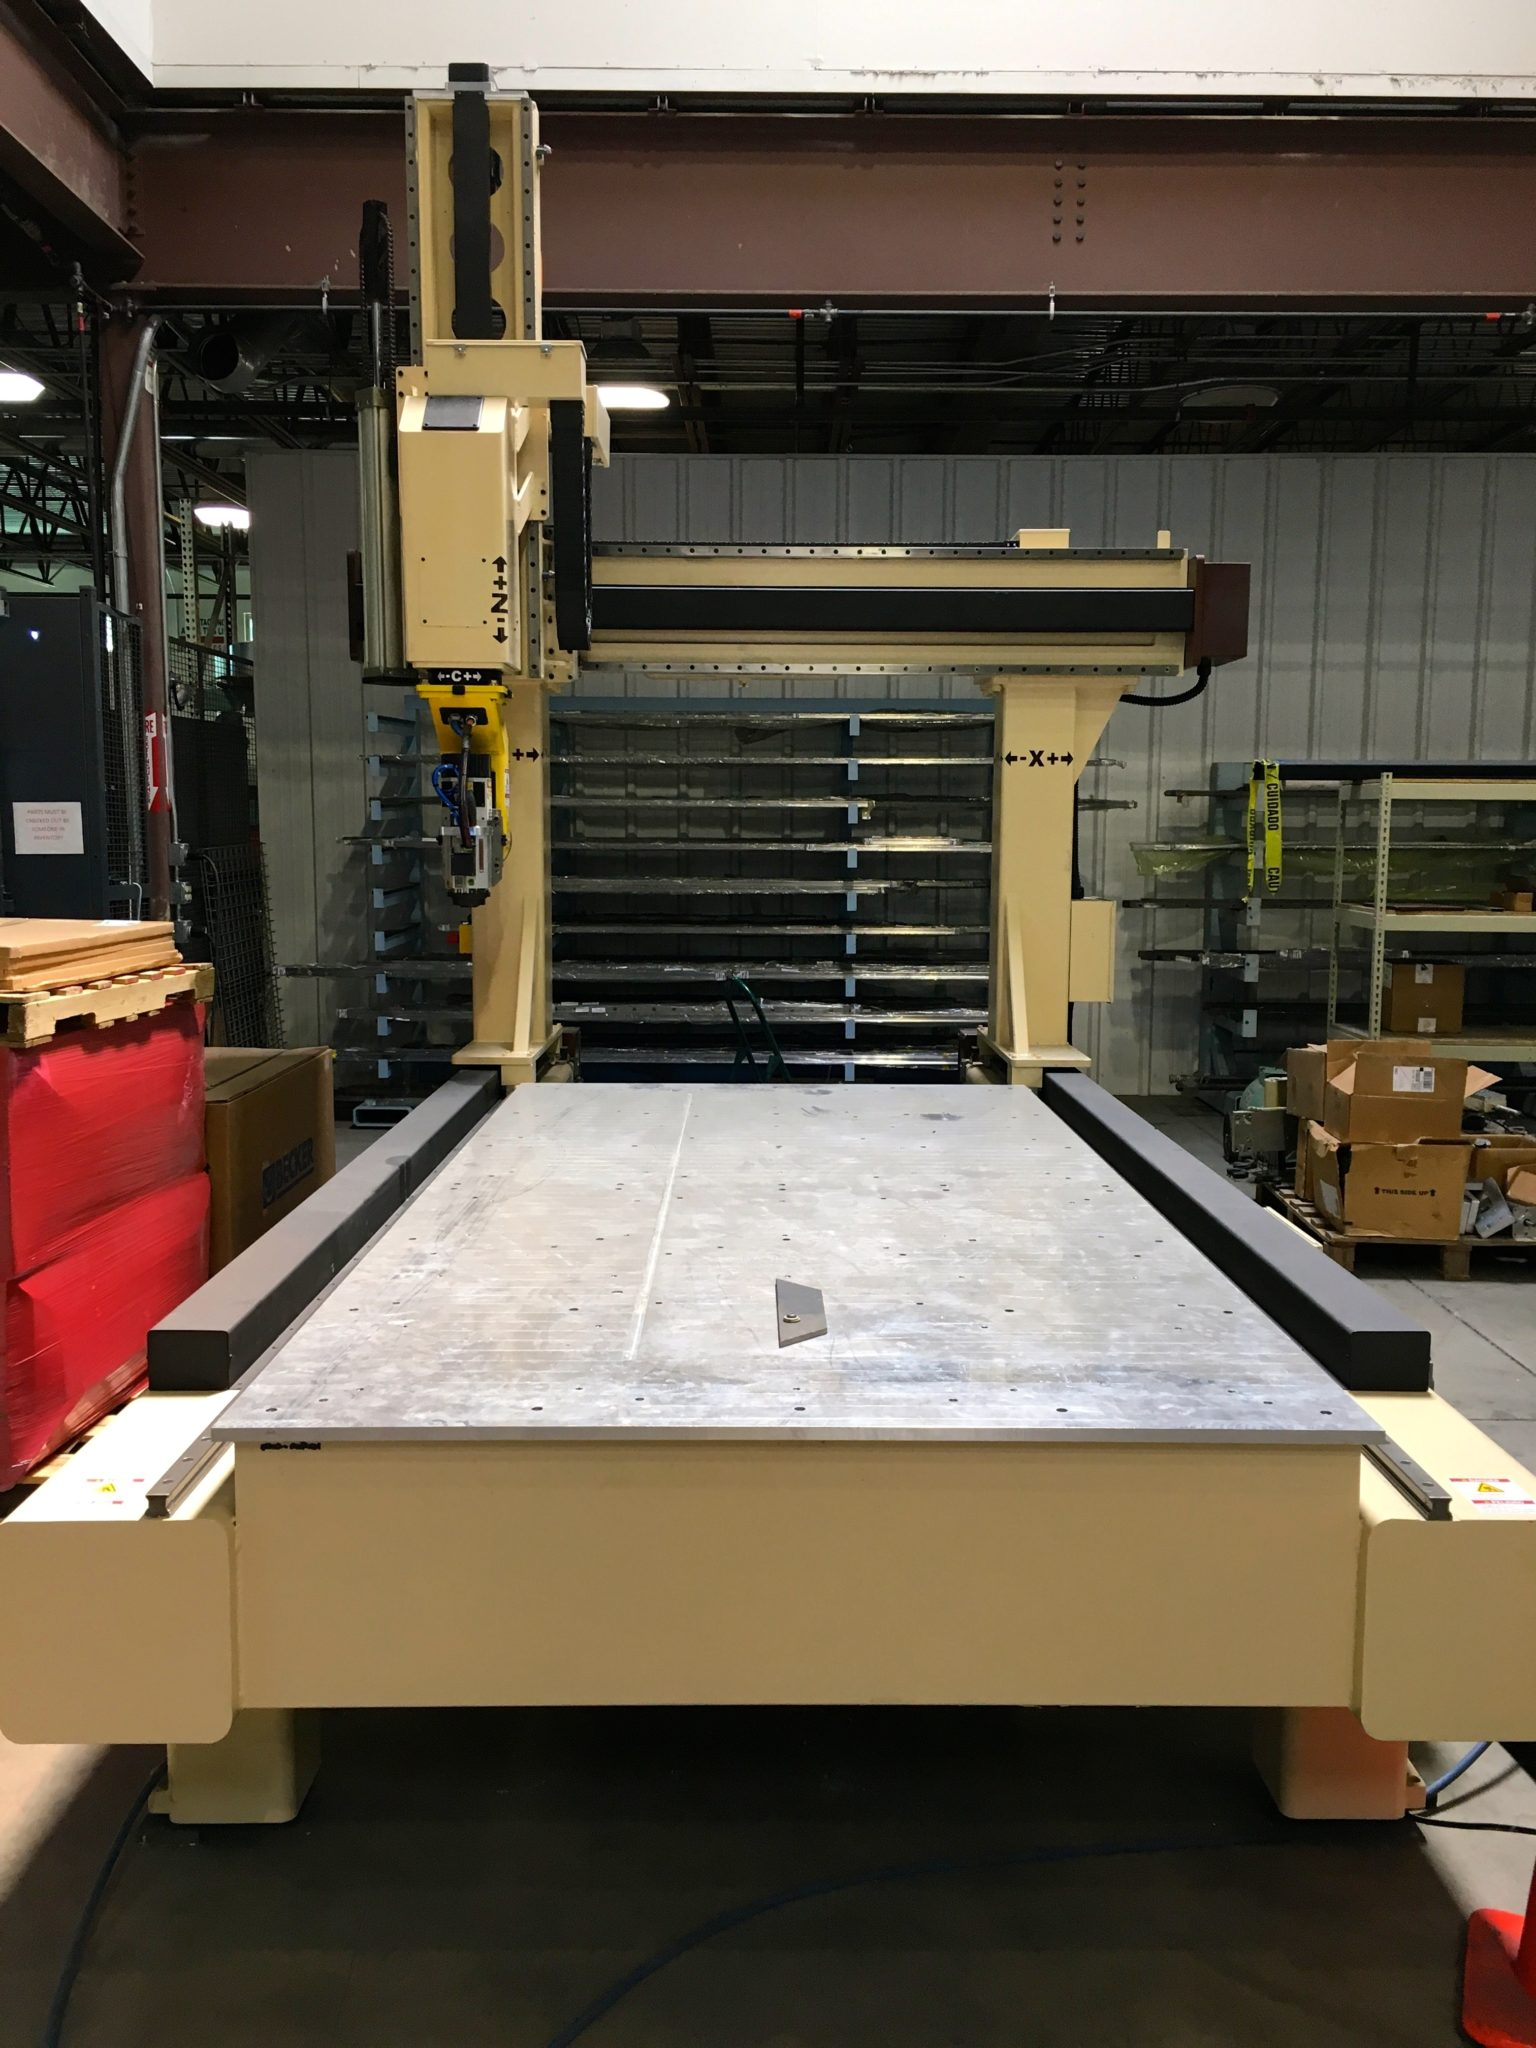 Refurbished Motionmaster CNC Router E421